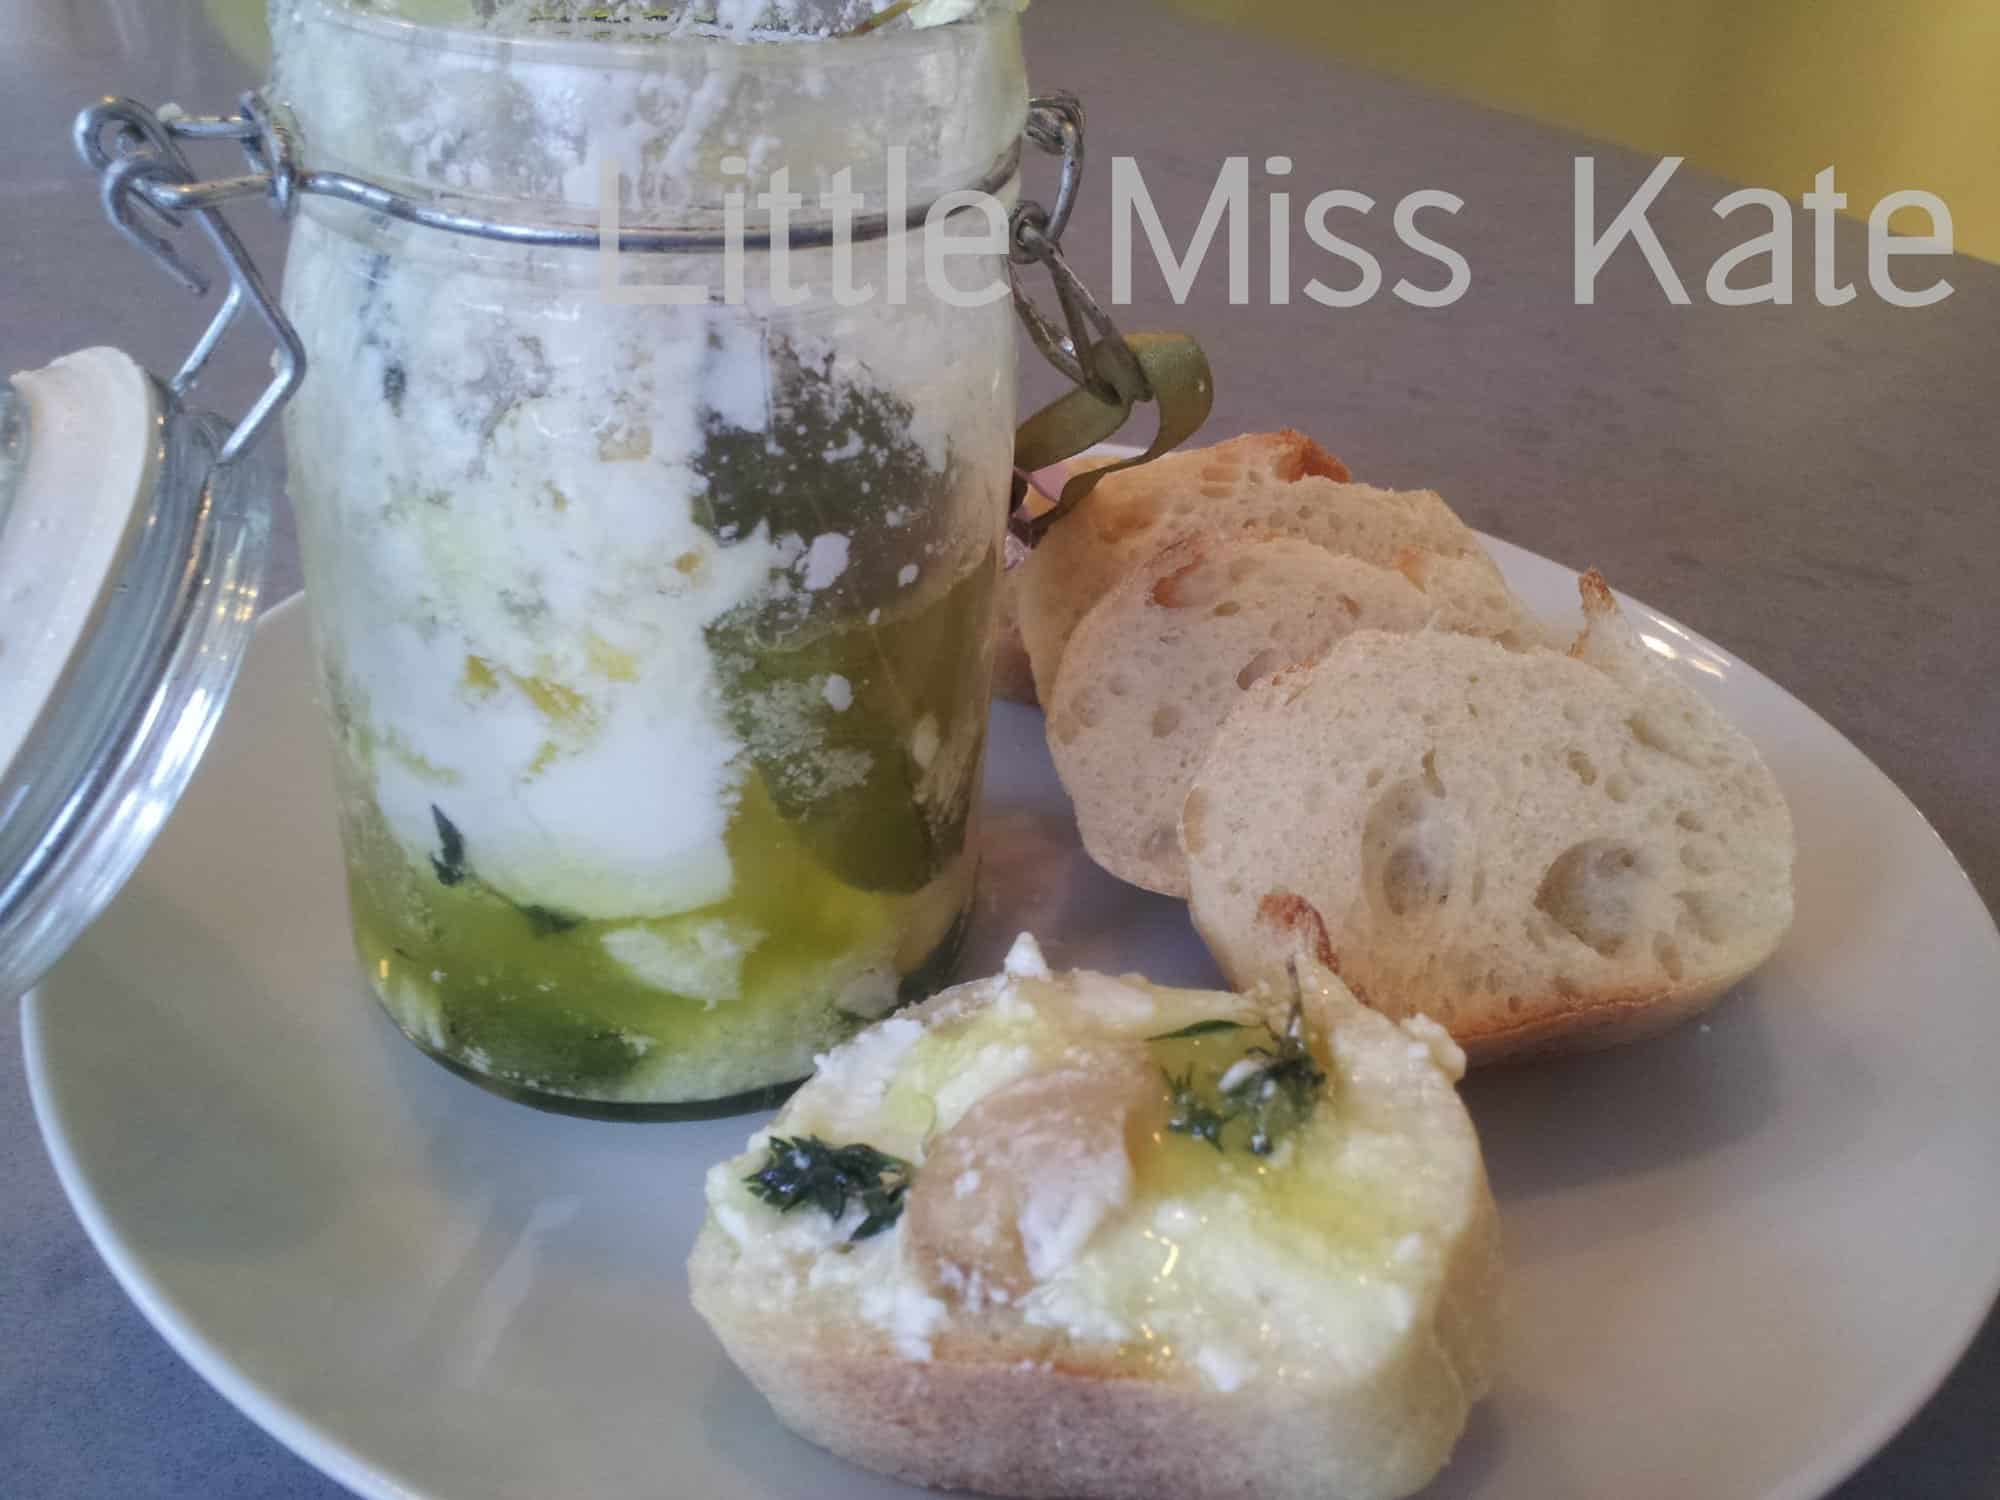 Food for Friday - Marinated Goat Cheese - Little Miss Kate